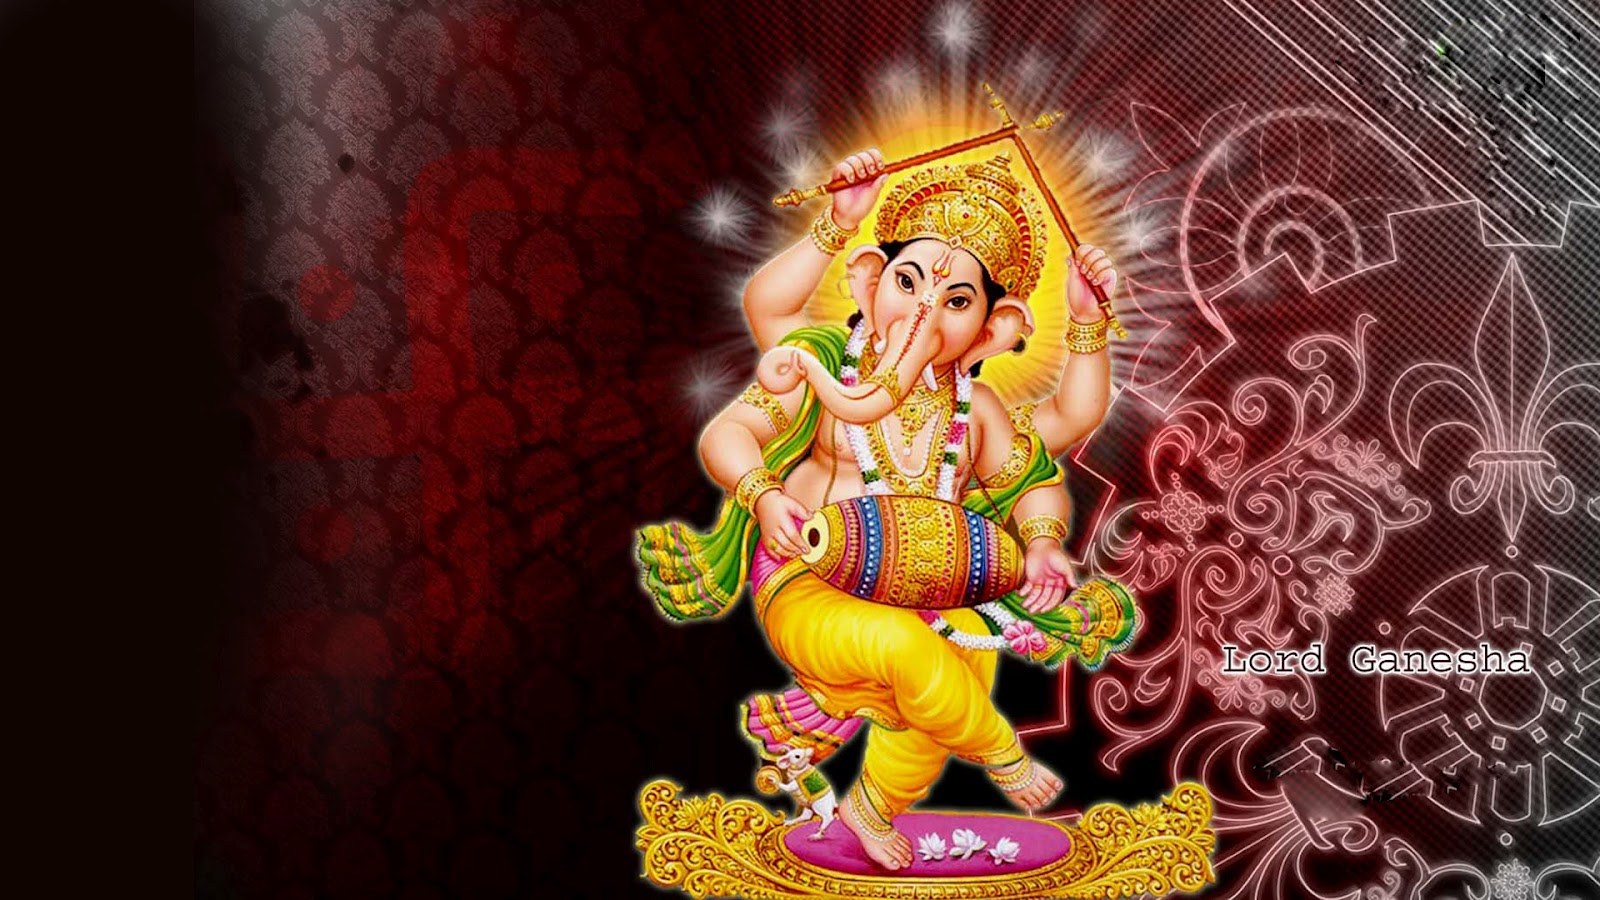 Shree Ganesh Hd Images: Lord Ganesha HD Wallpapers